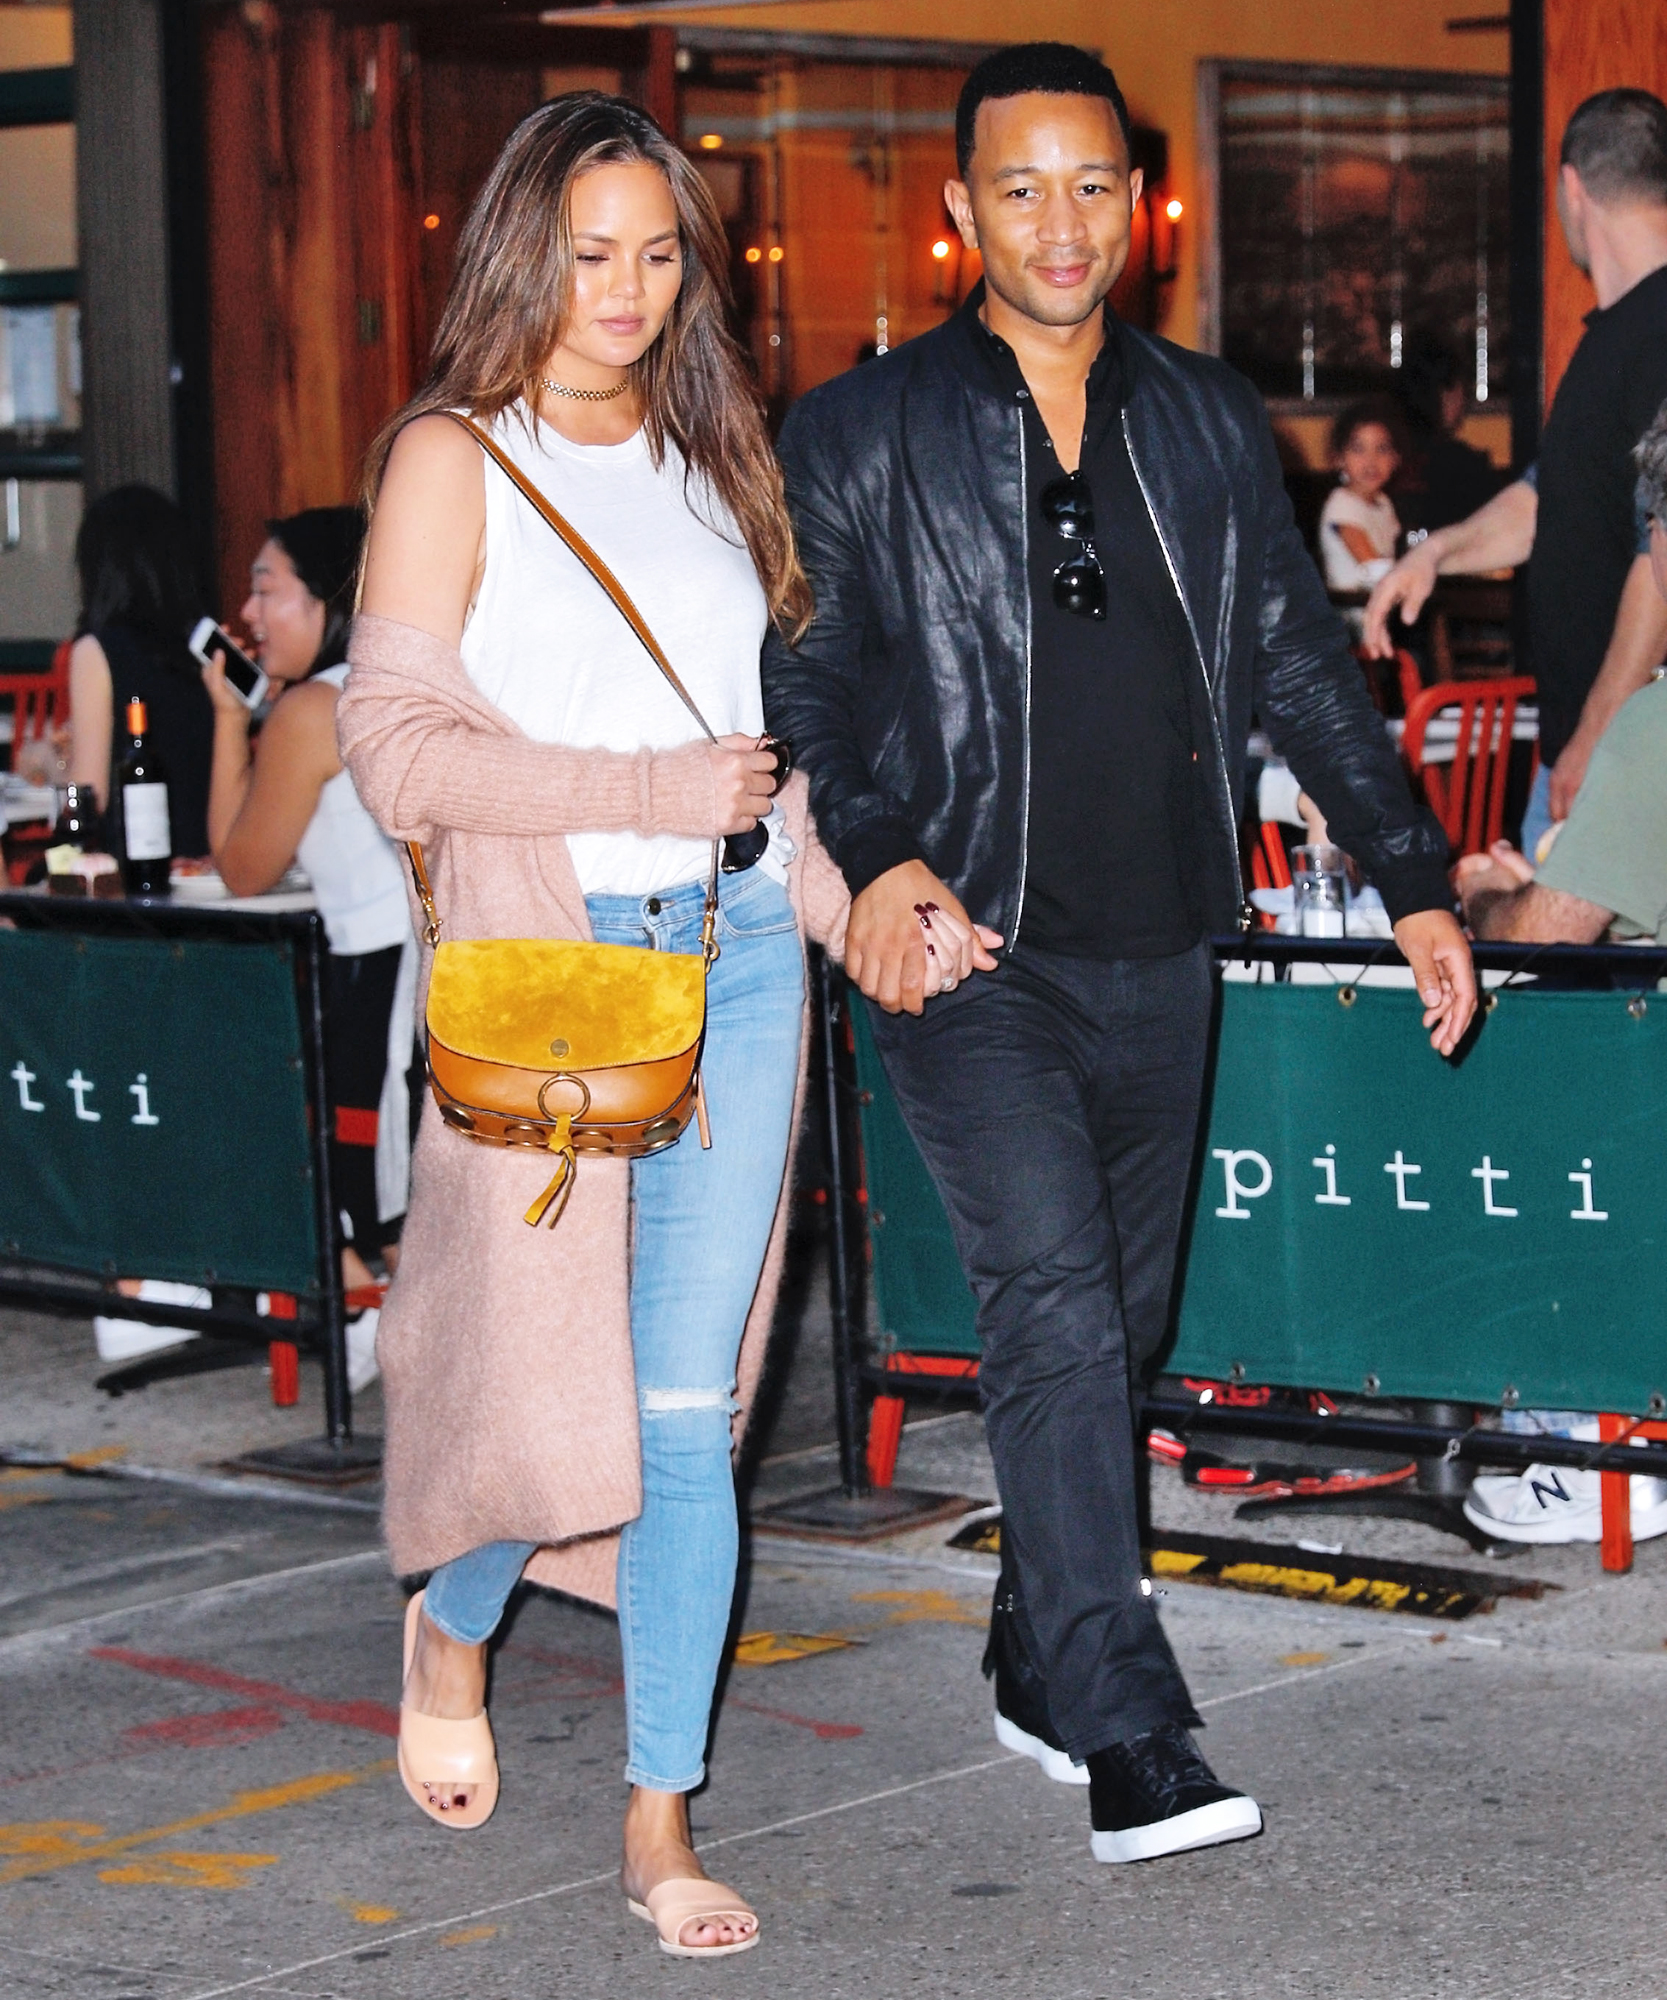 #RelationshipGoals Alert: Chrissy Teigen and John Legend Go on a Date in N.Y.C.